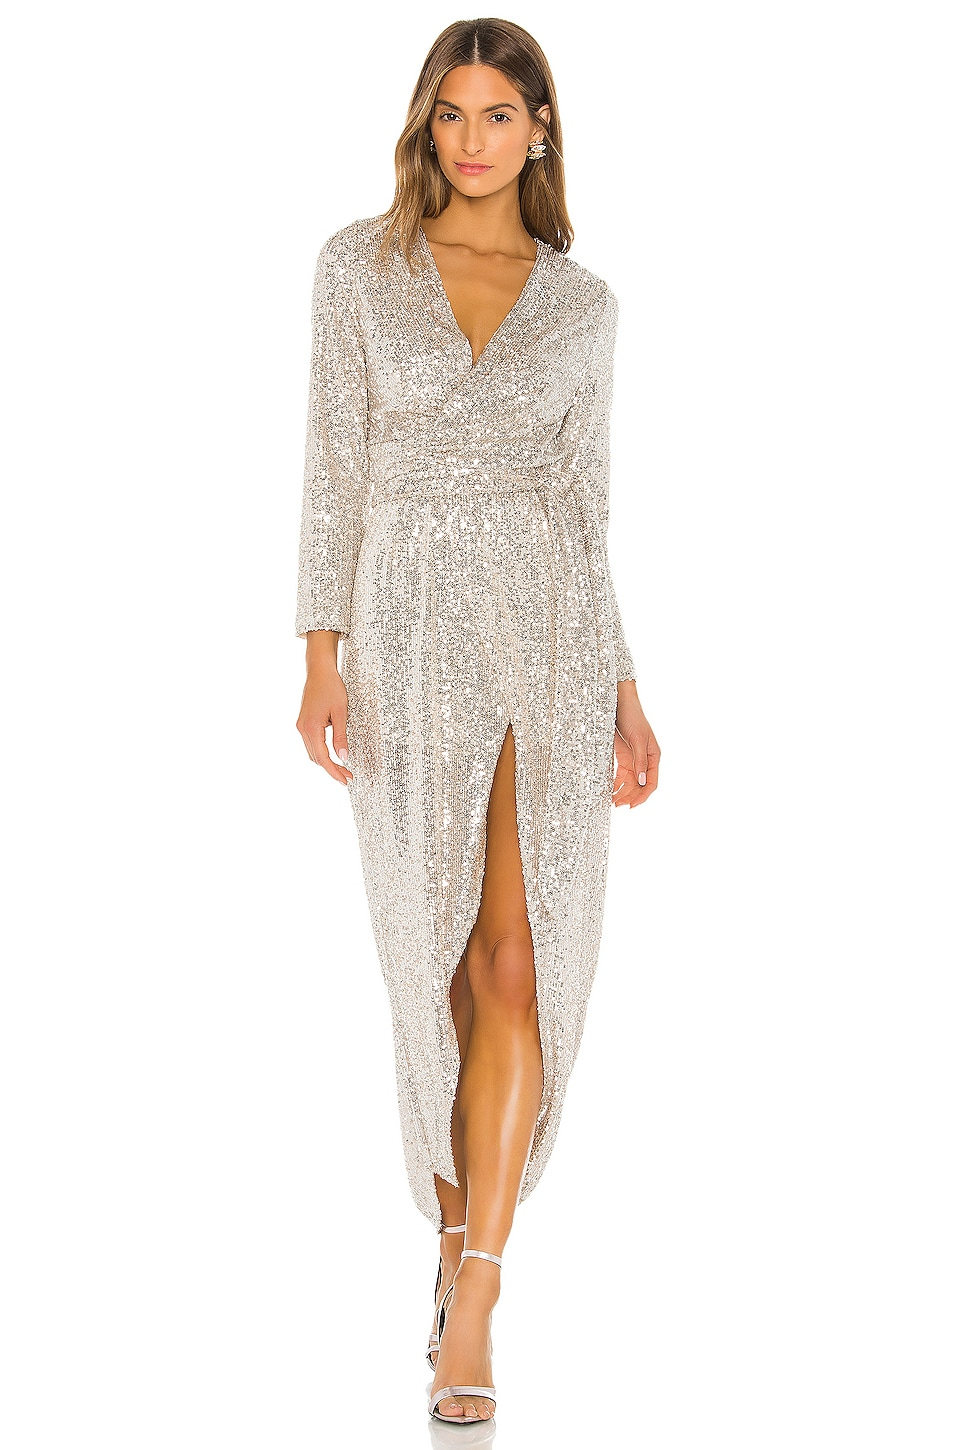 RESA Cher Maxi Dress in Silver Sequin